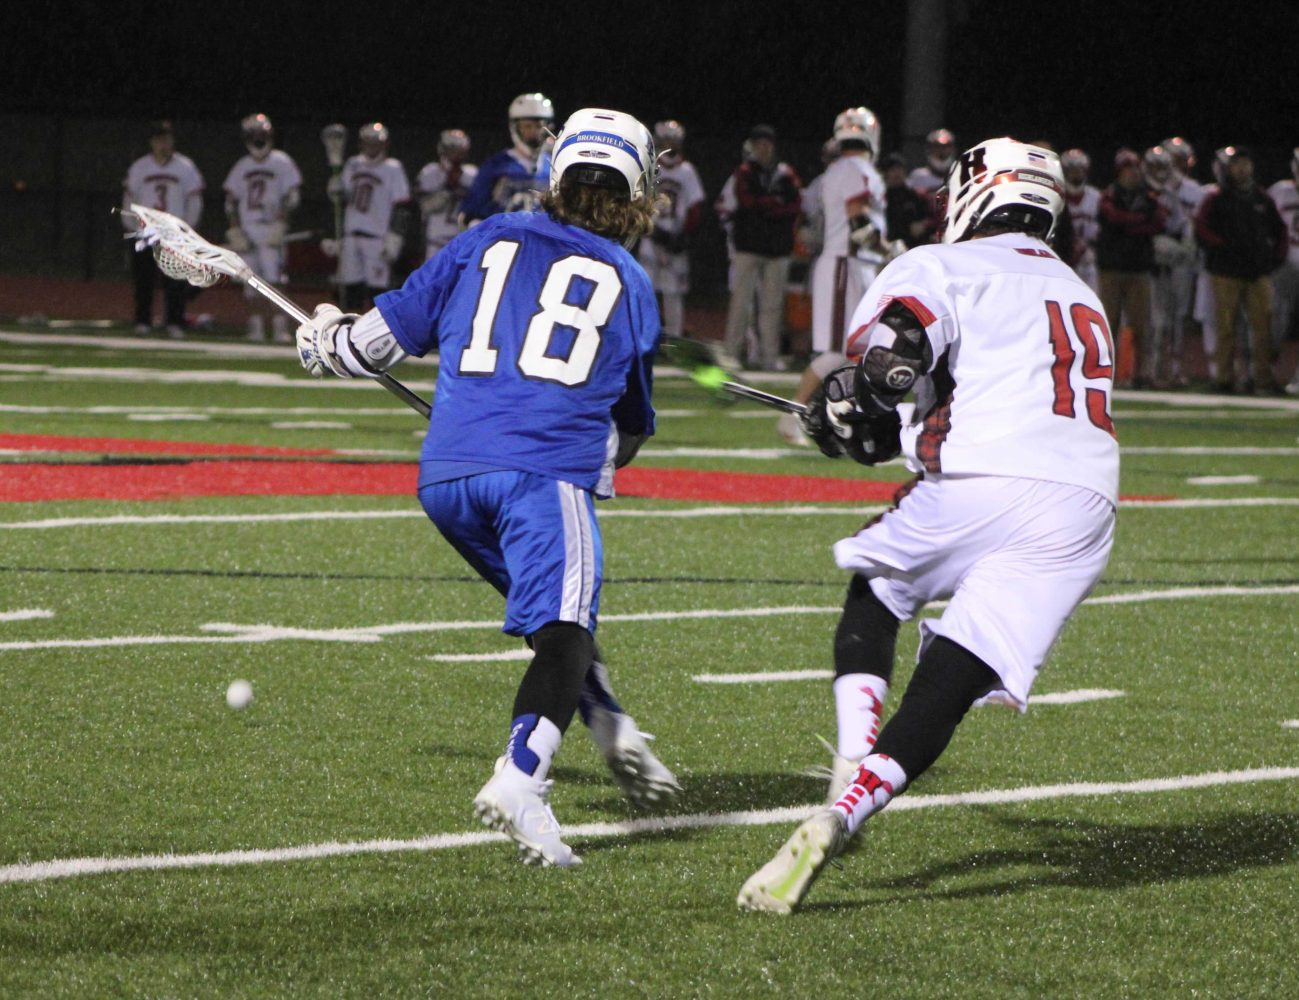 Michael Gebhardt, junior, tries to steal the ball from his opponent at a previous game against Brookfield.